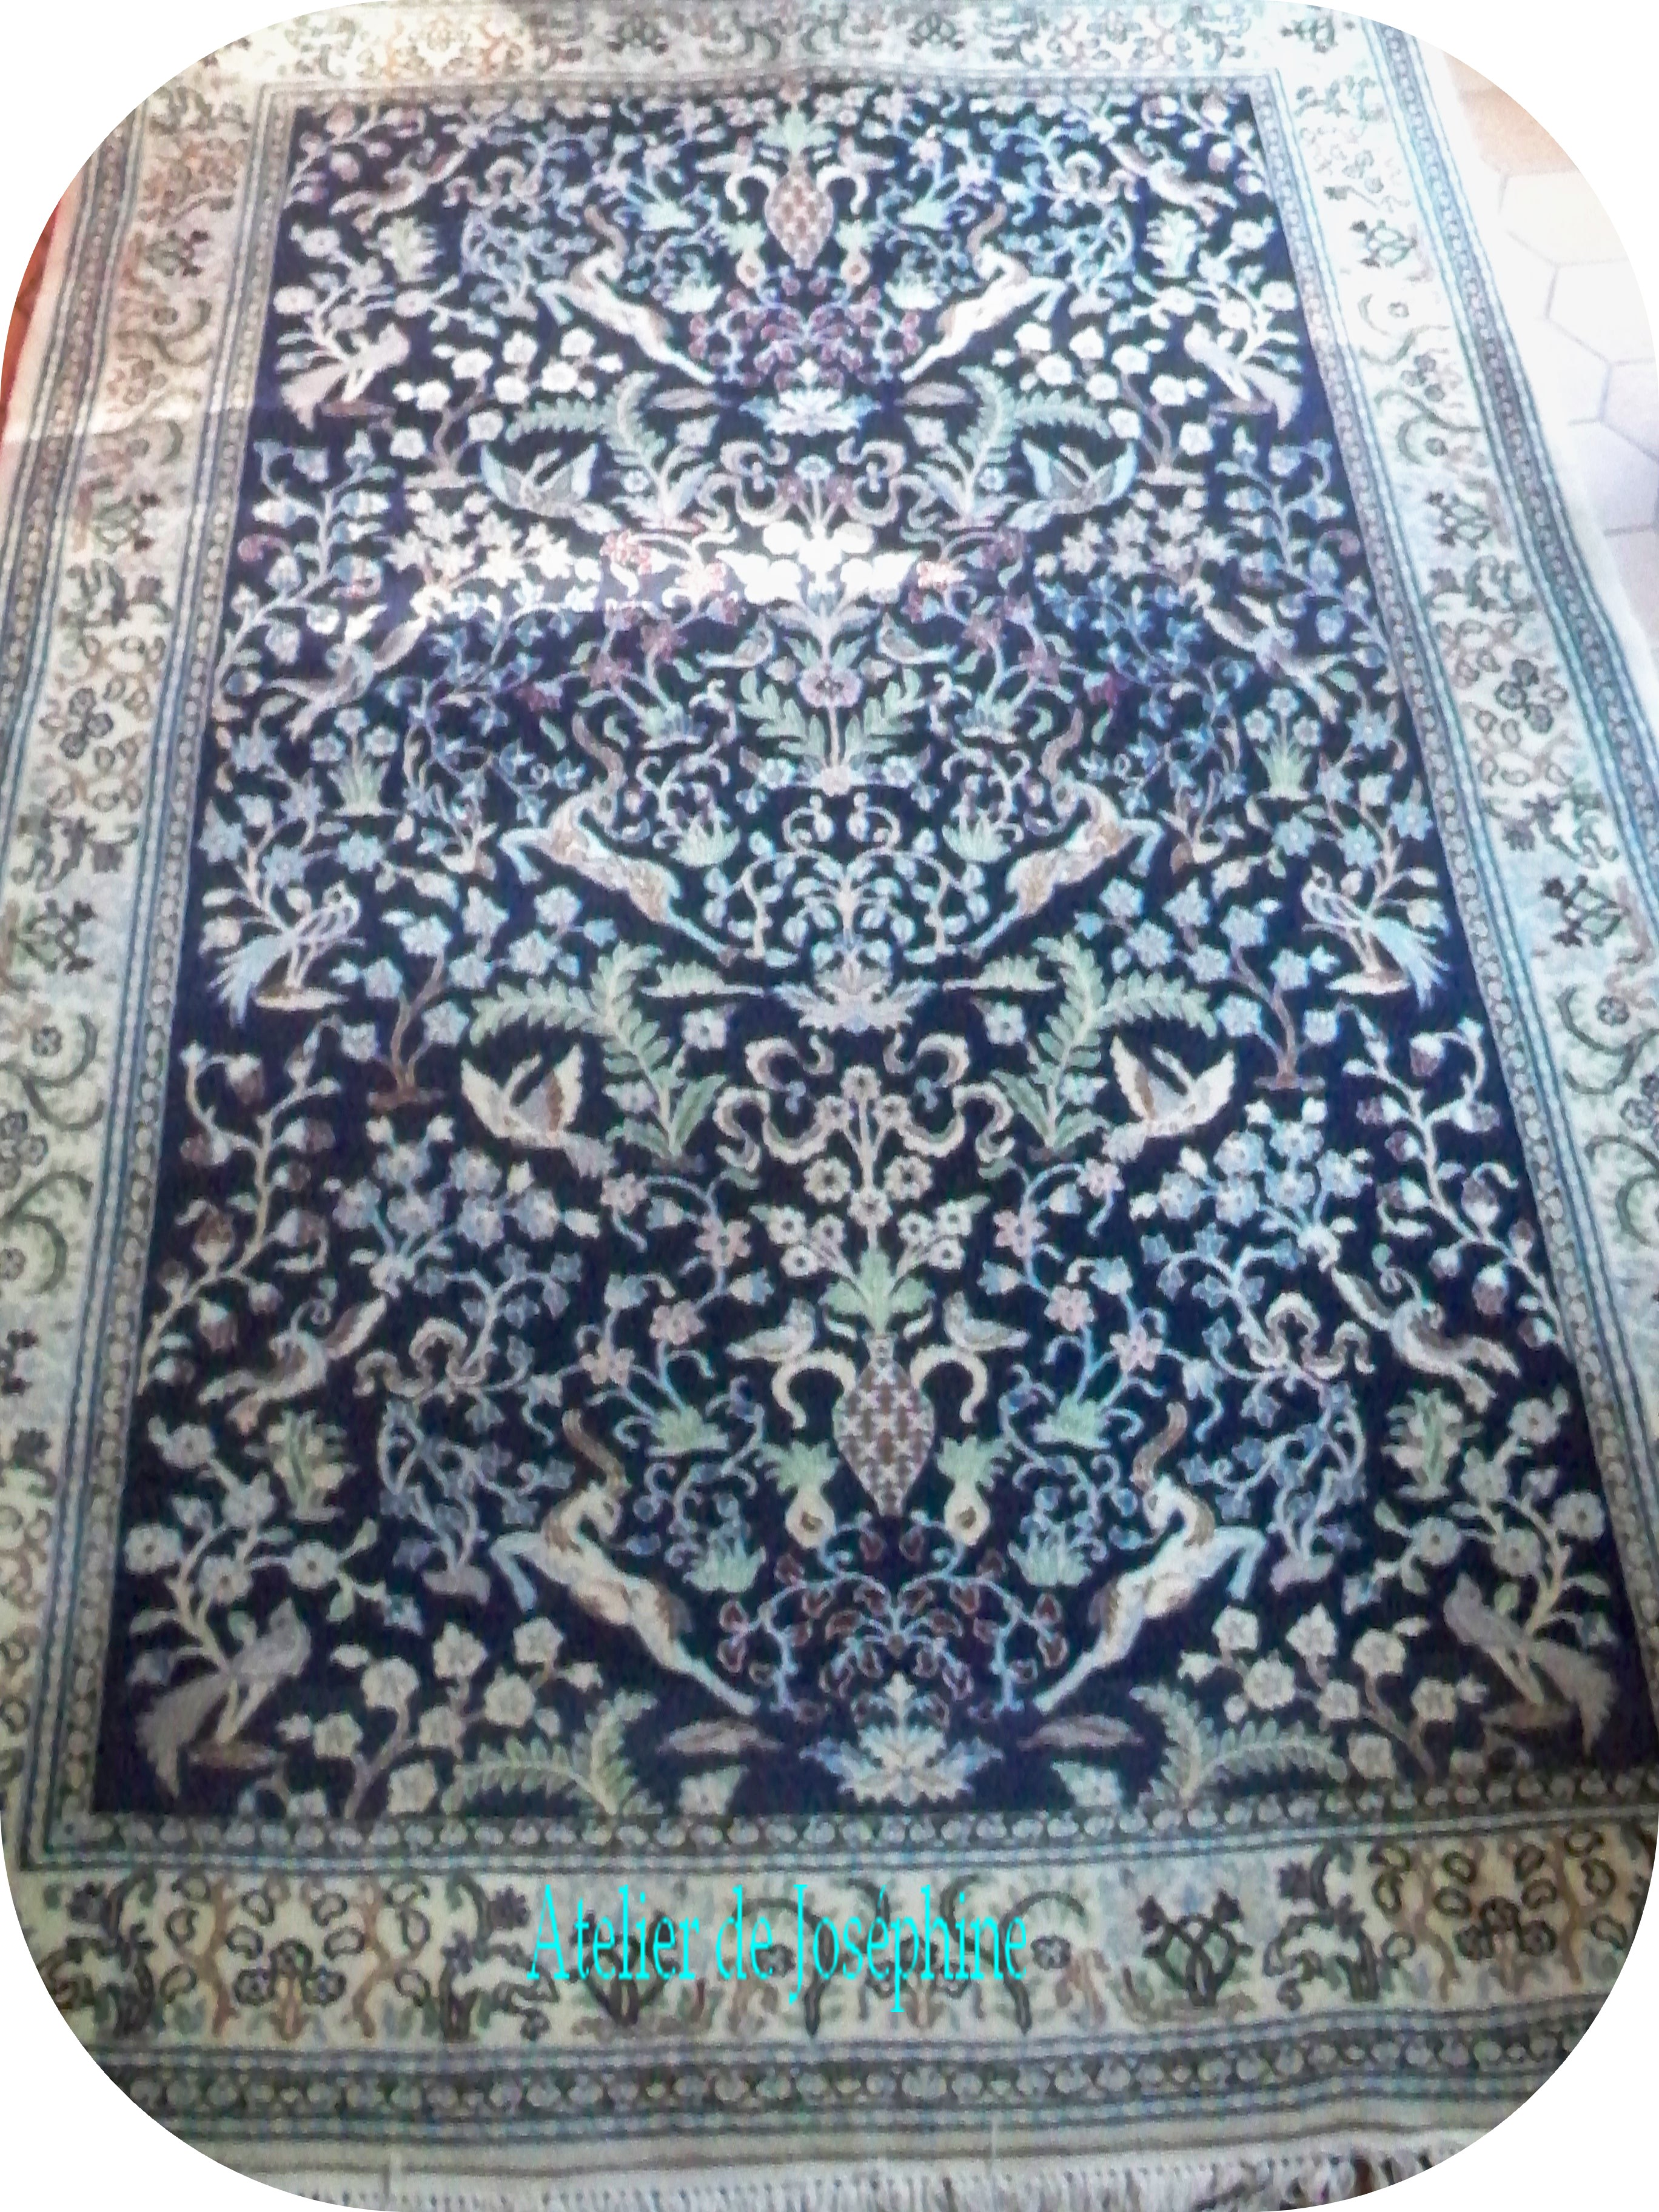 peinture tapis d orient bleu motif d iran le blog atelier de jos phine. Black Bedroom Furniture Sets. Home Design Ideas